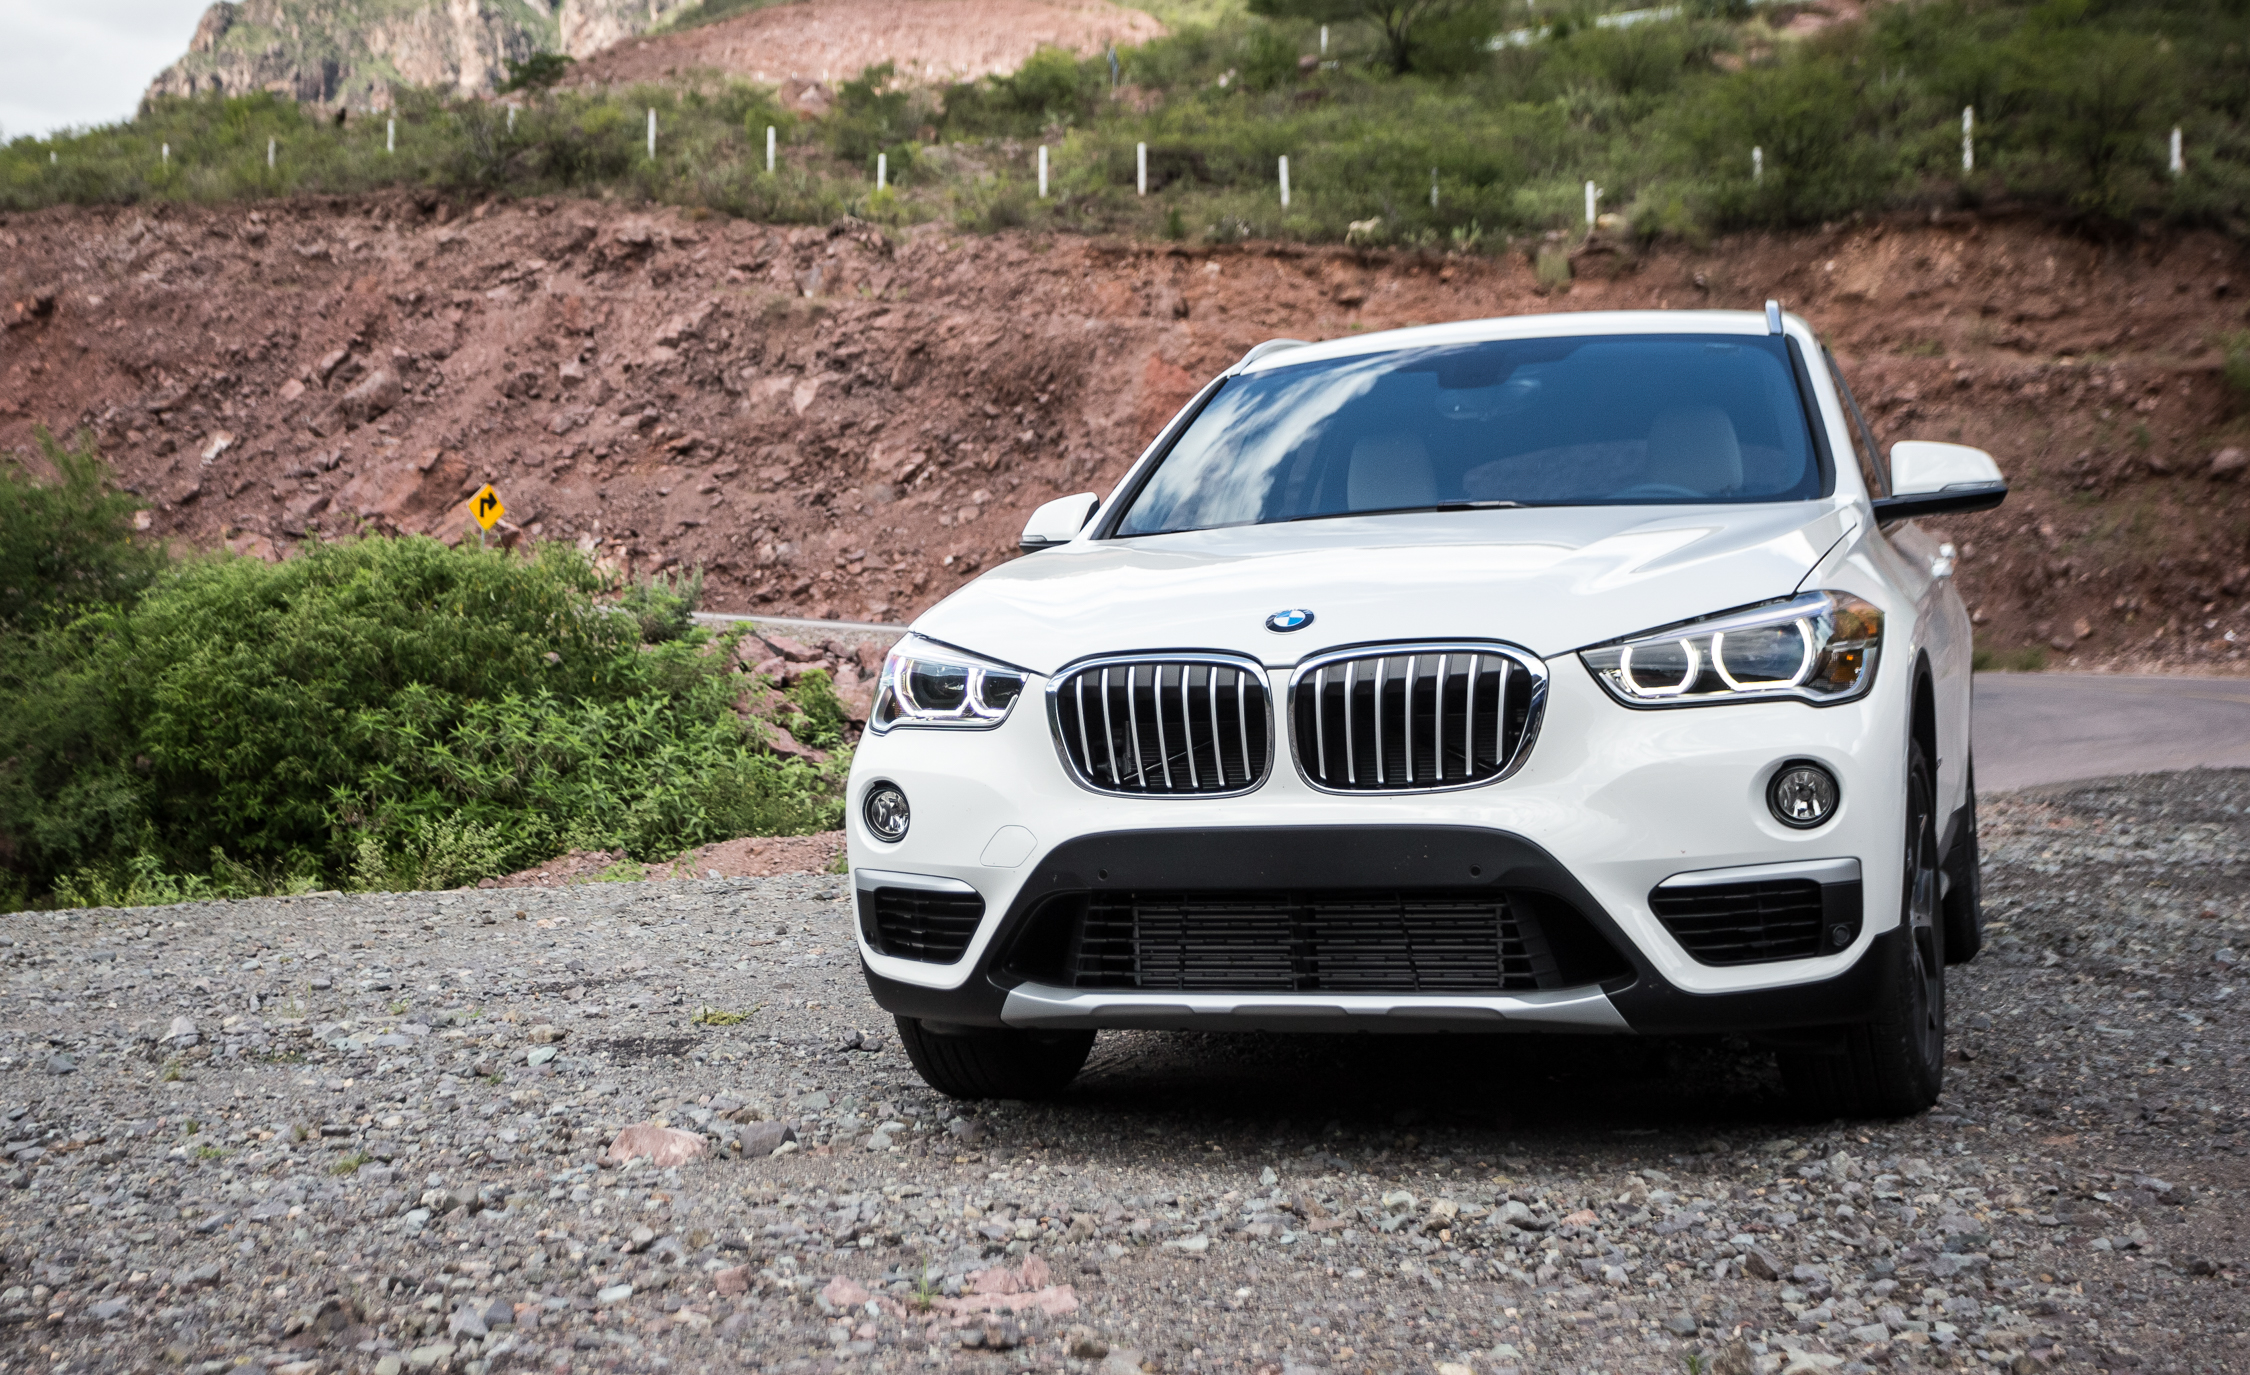 2016 BMW X1 Exterior White Metallic Front (View 34 of 36)